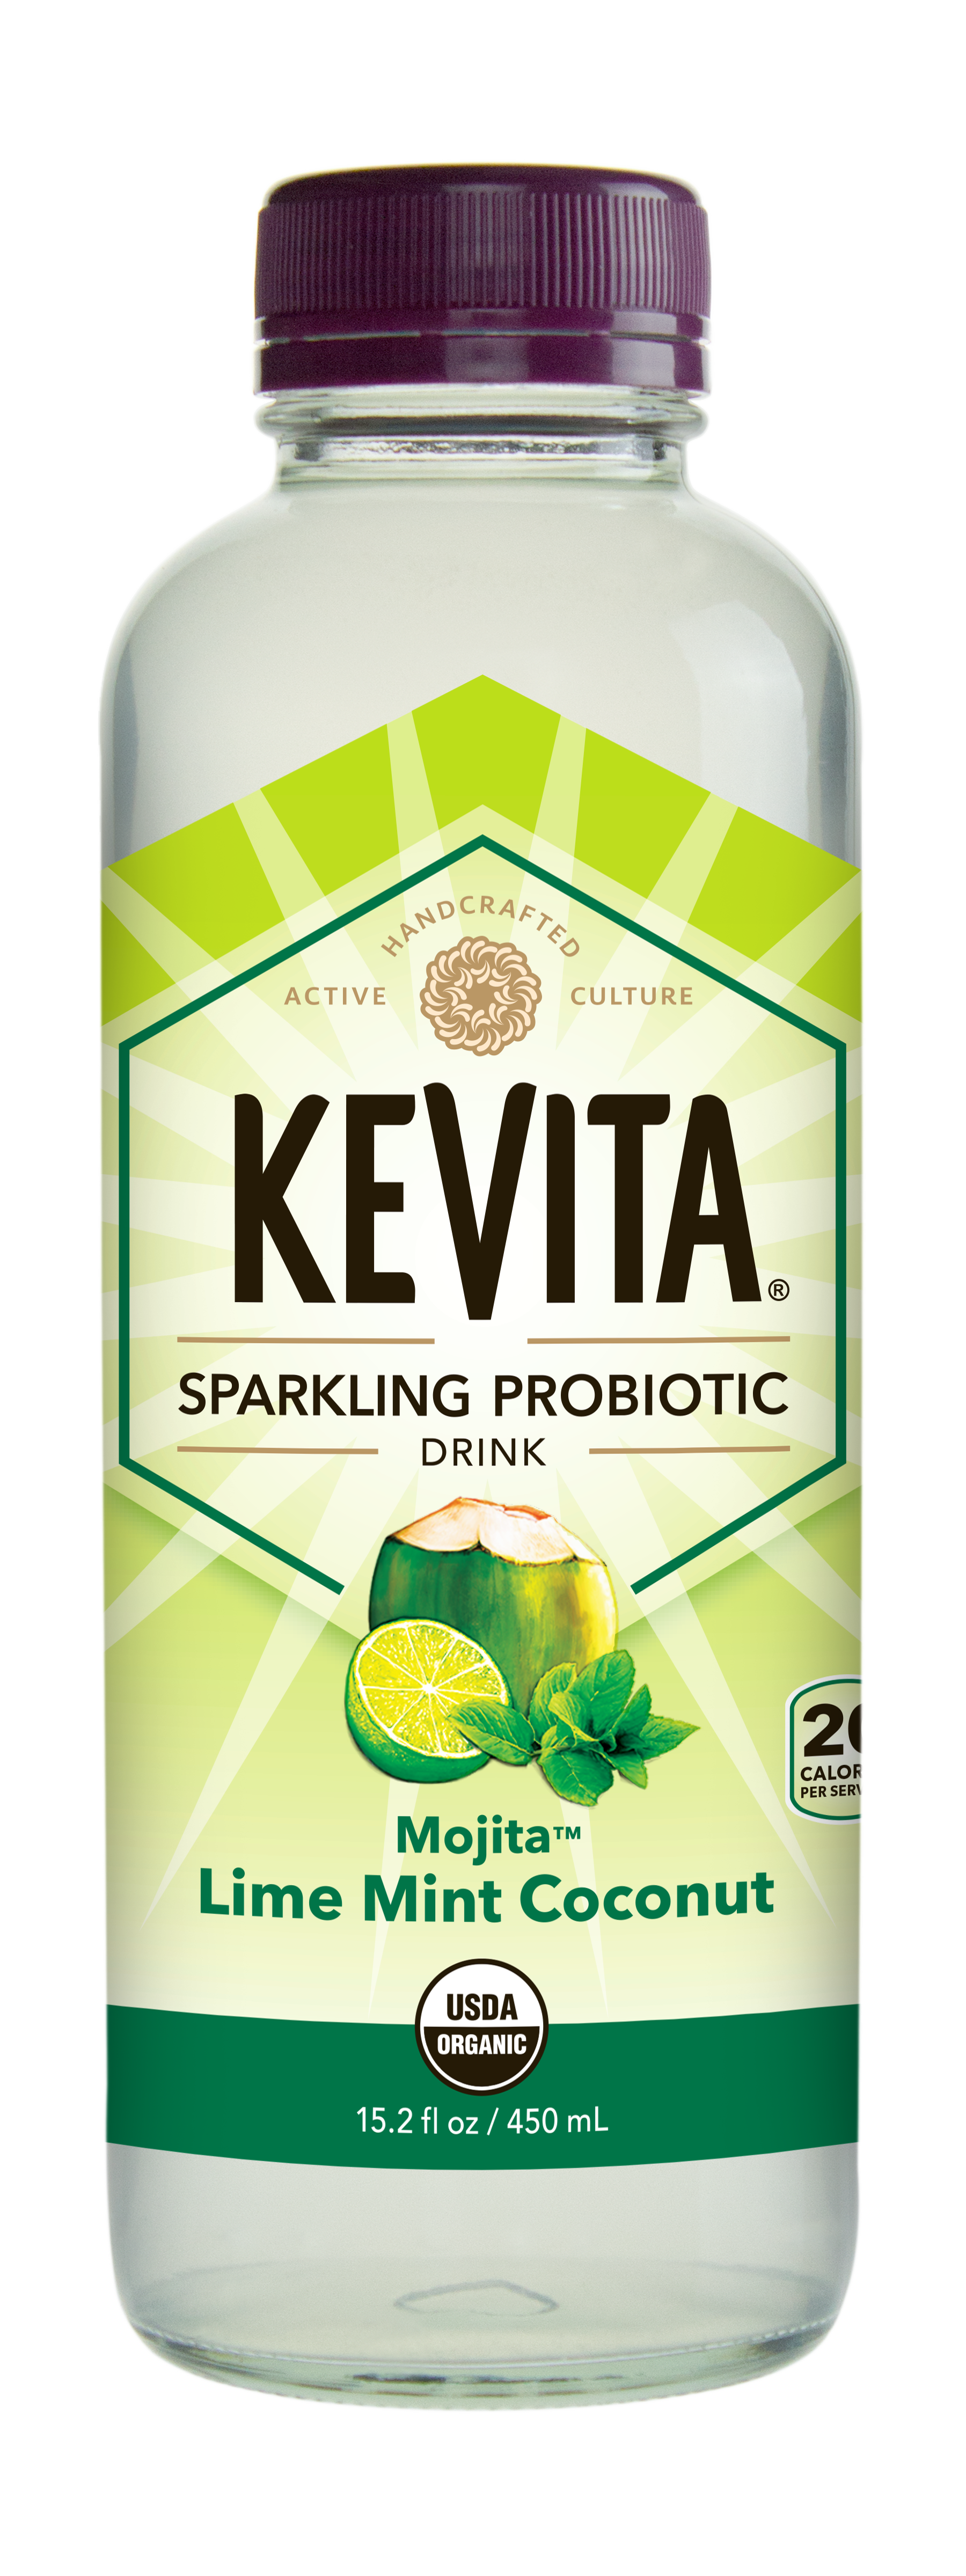 Love this flavor -- not very sweet but something about it.... super refreshing and overall delicious.